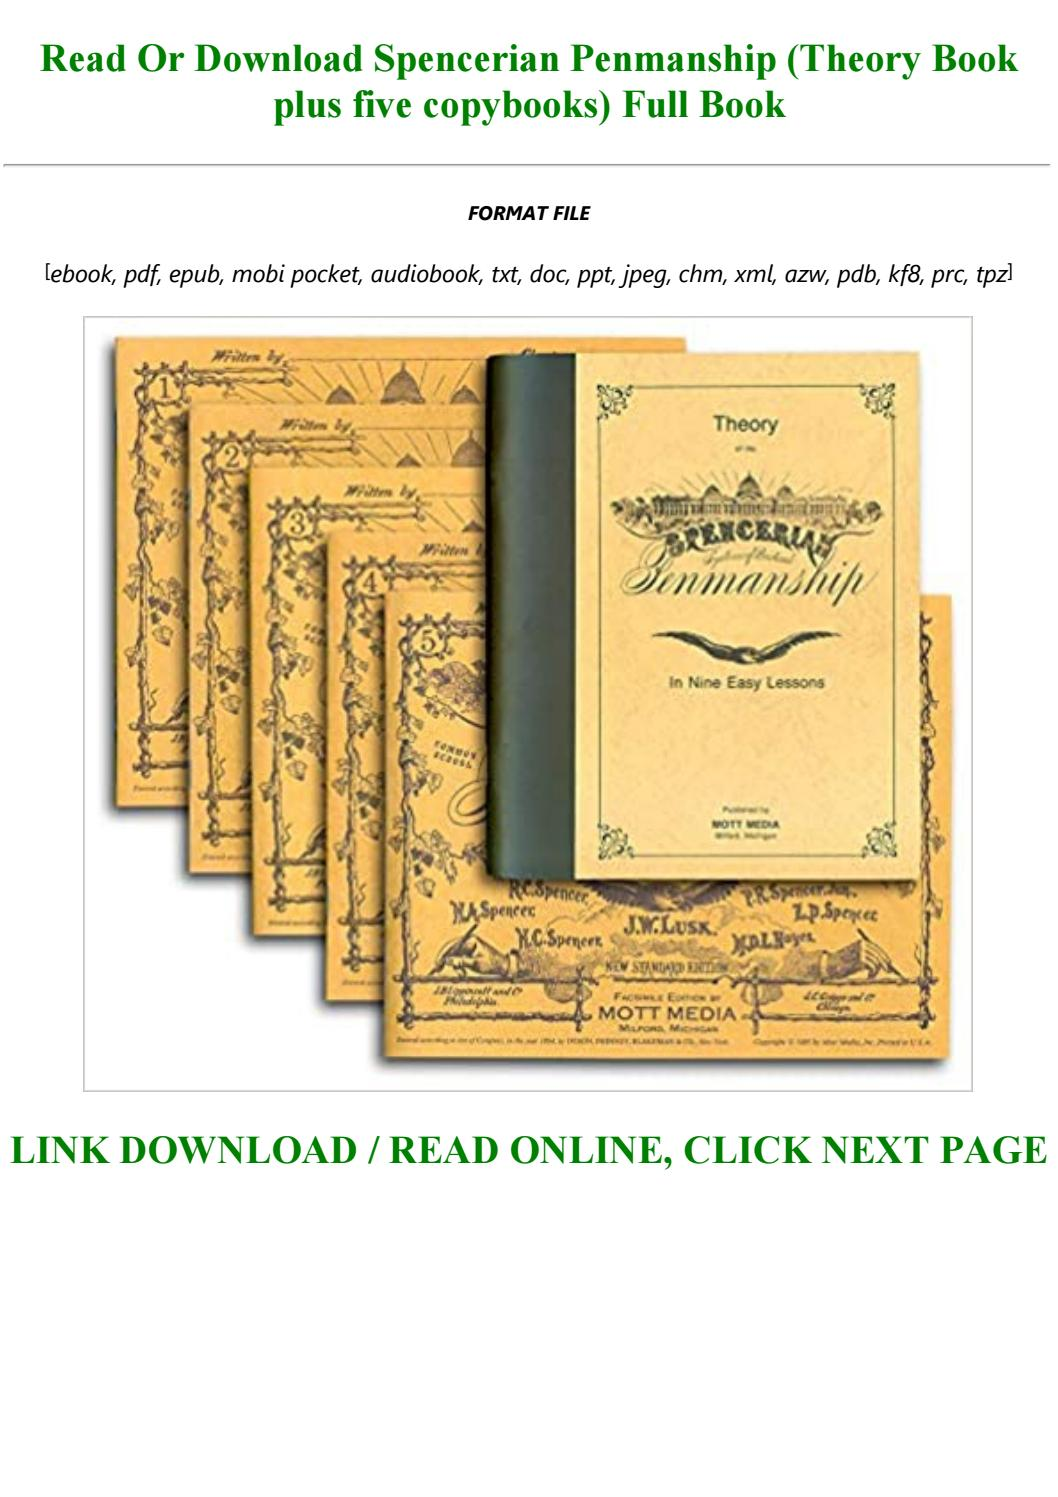 E Book Download Spencerian Penmanship Theory Book Plus Five Copybooks Full By Chickie146546 Issuu